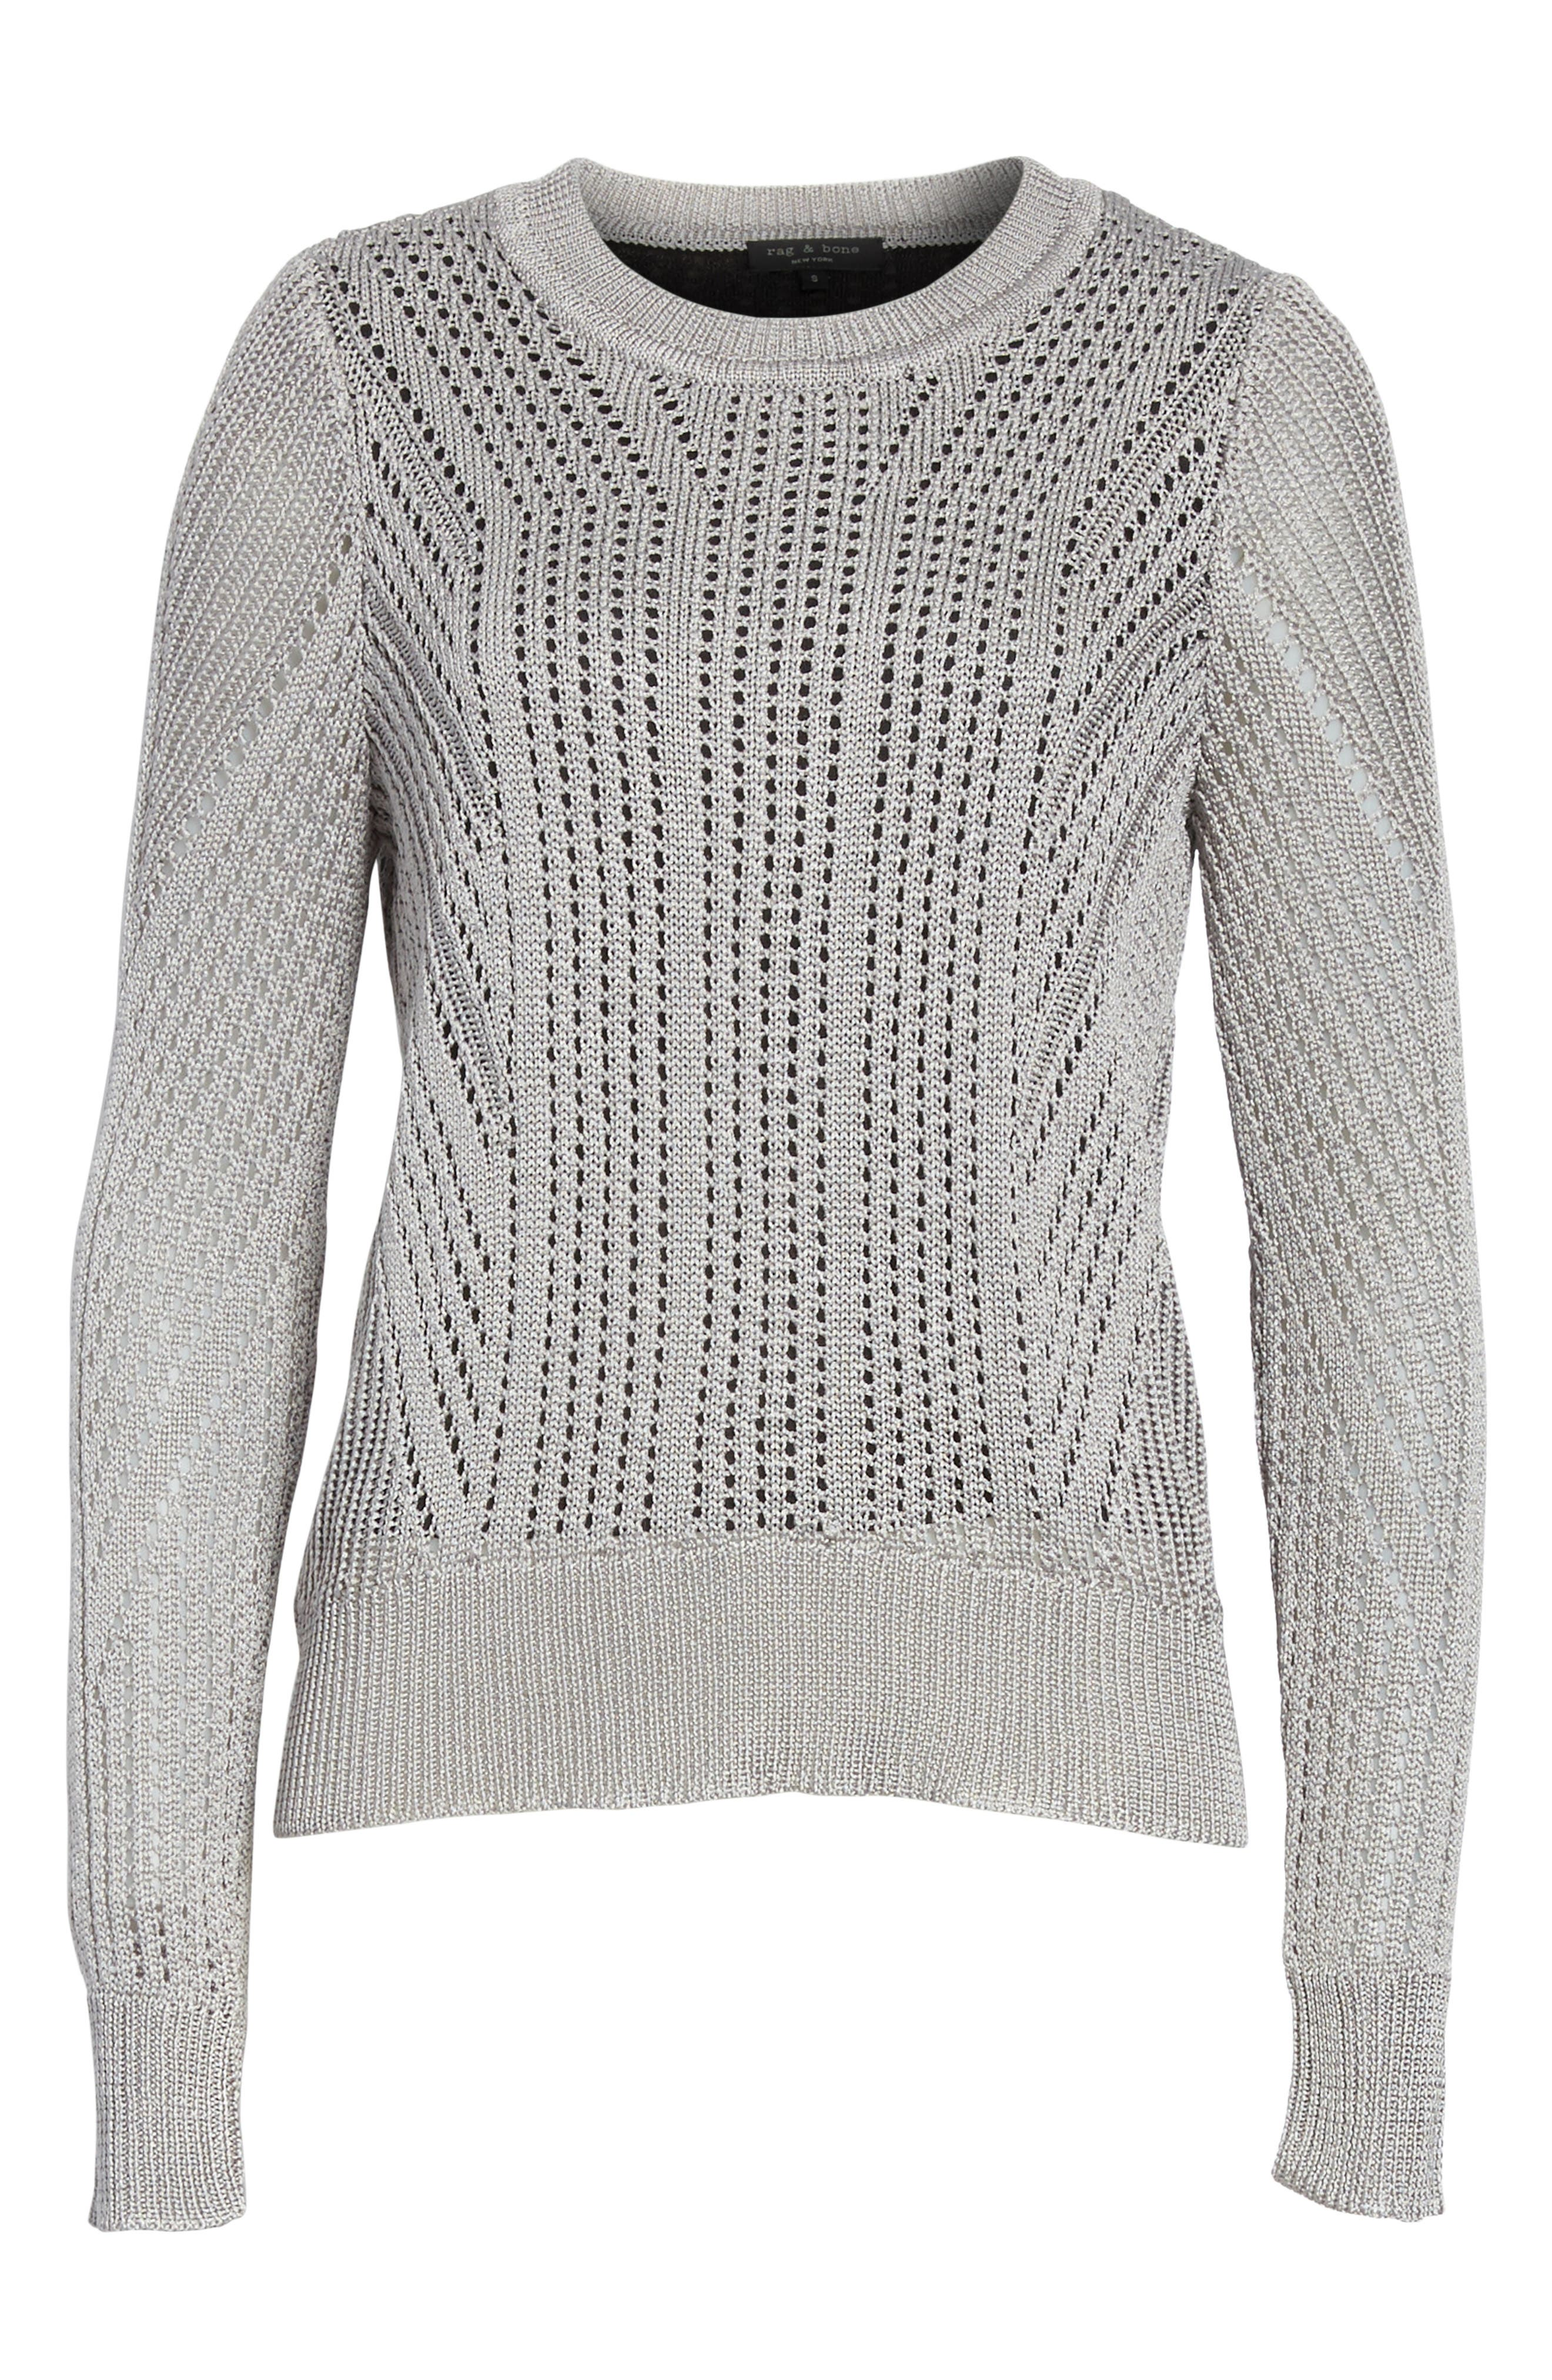 Pamela Crewneck Pointelle Sweater,                             Alternate thumbnail 11, color,